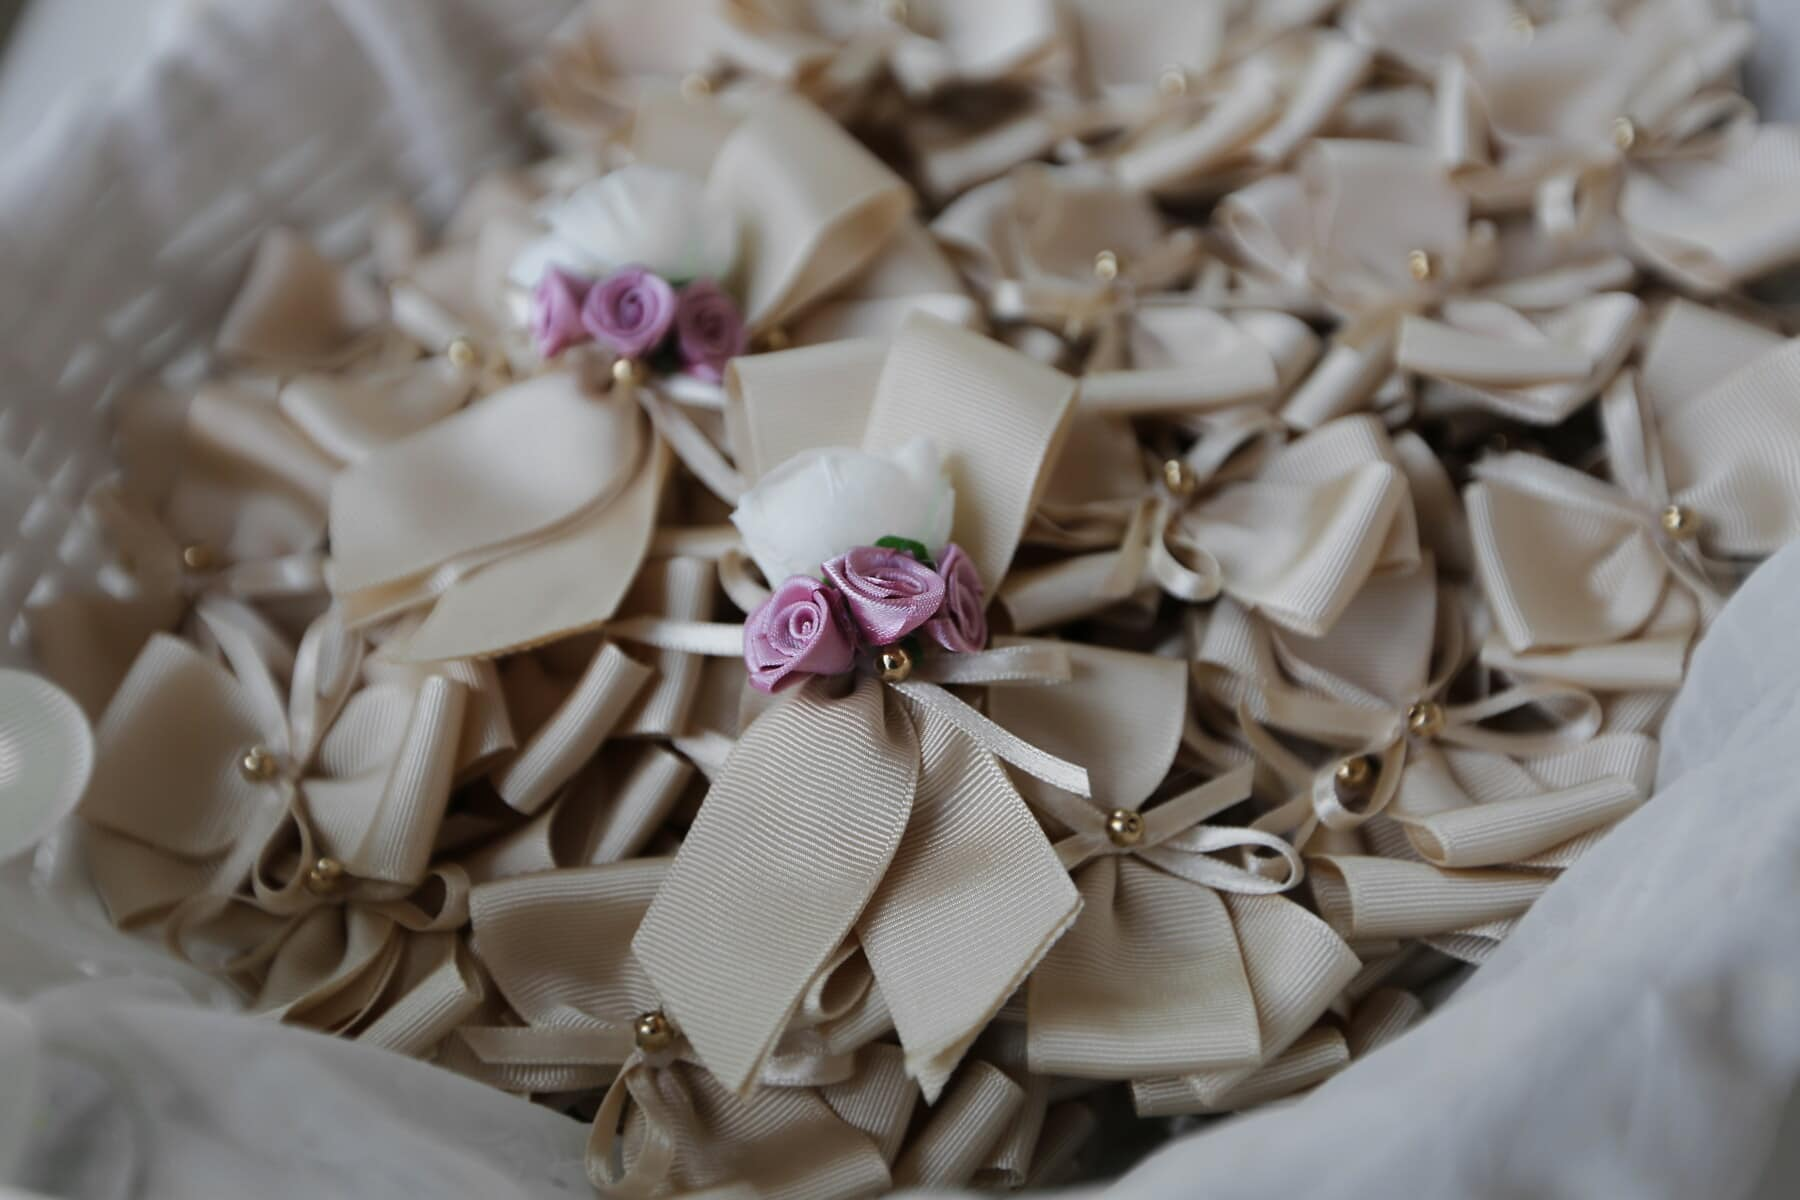 roses, handmade, pinkish, miniature, ribbon, interior decoration, wedding, romance, interior design, still life